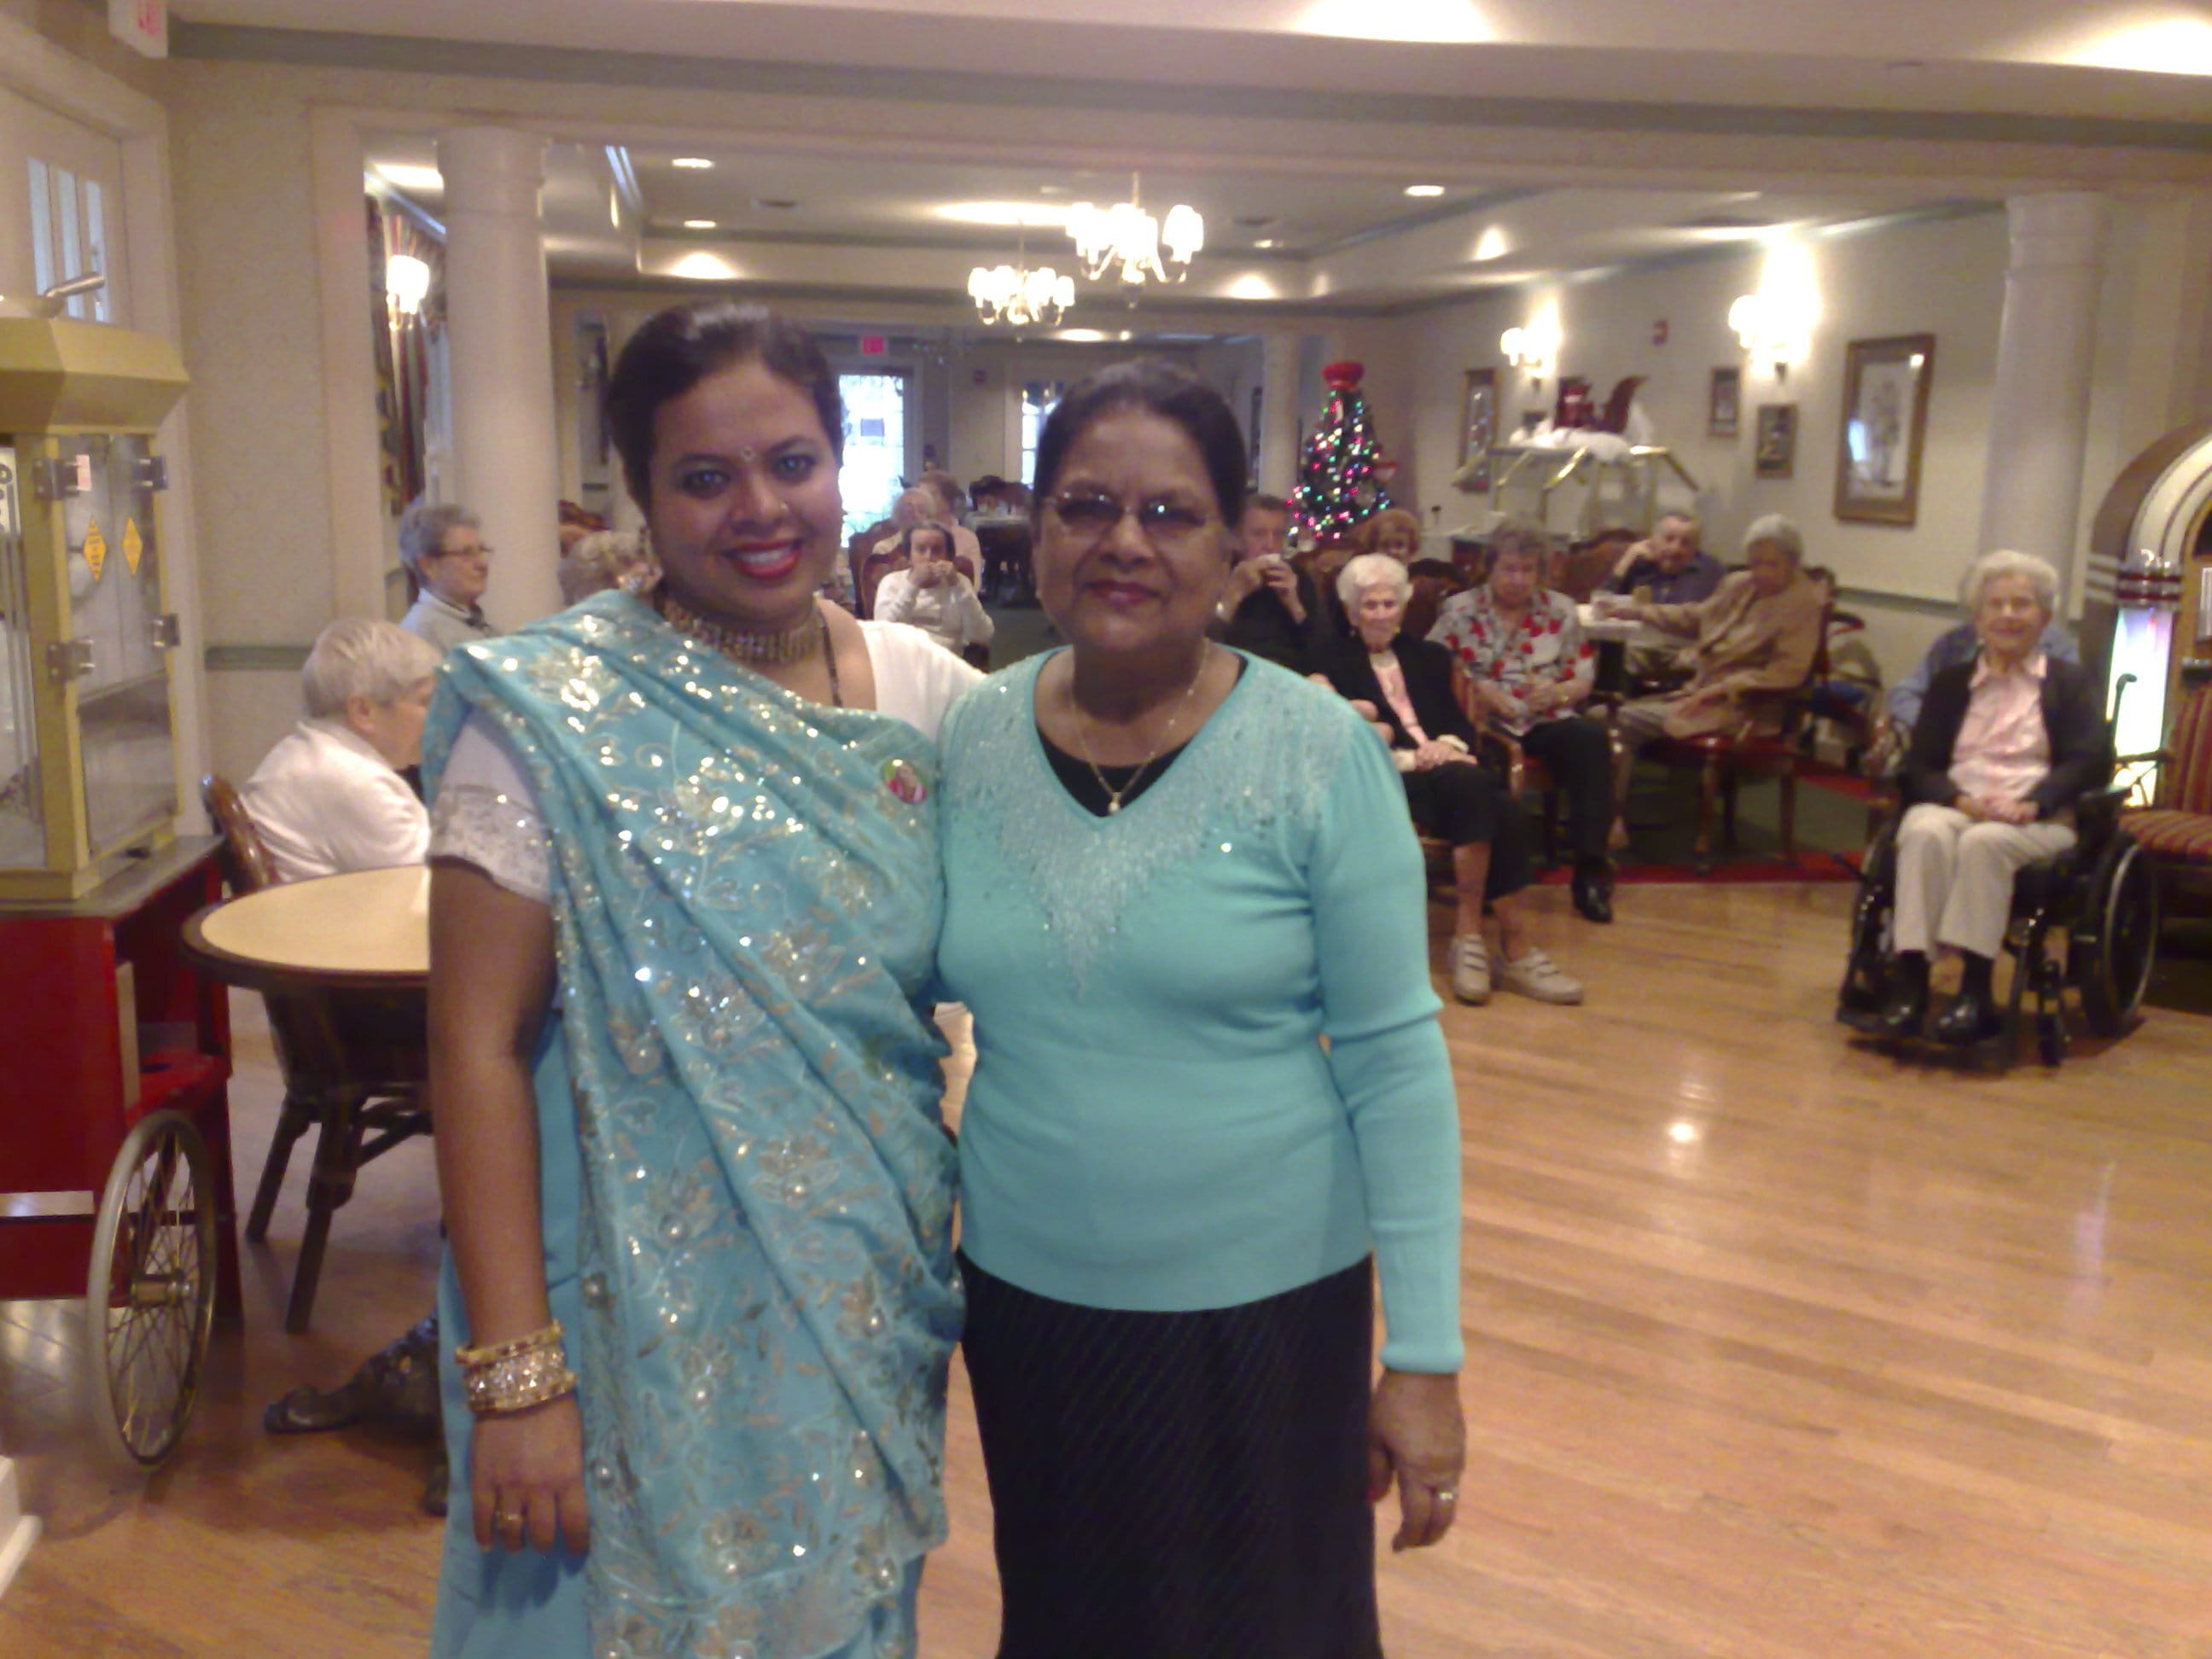 Anandita reconnected with Senior lady that had practised Sahaja Yoga in Montreal many years ago